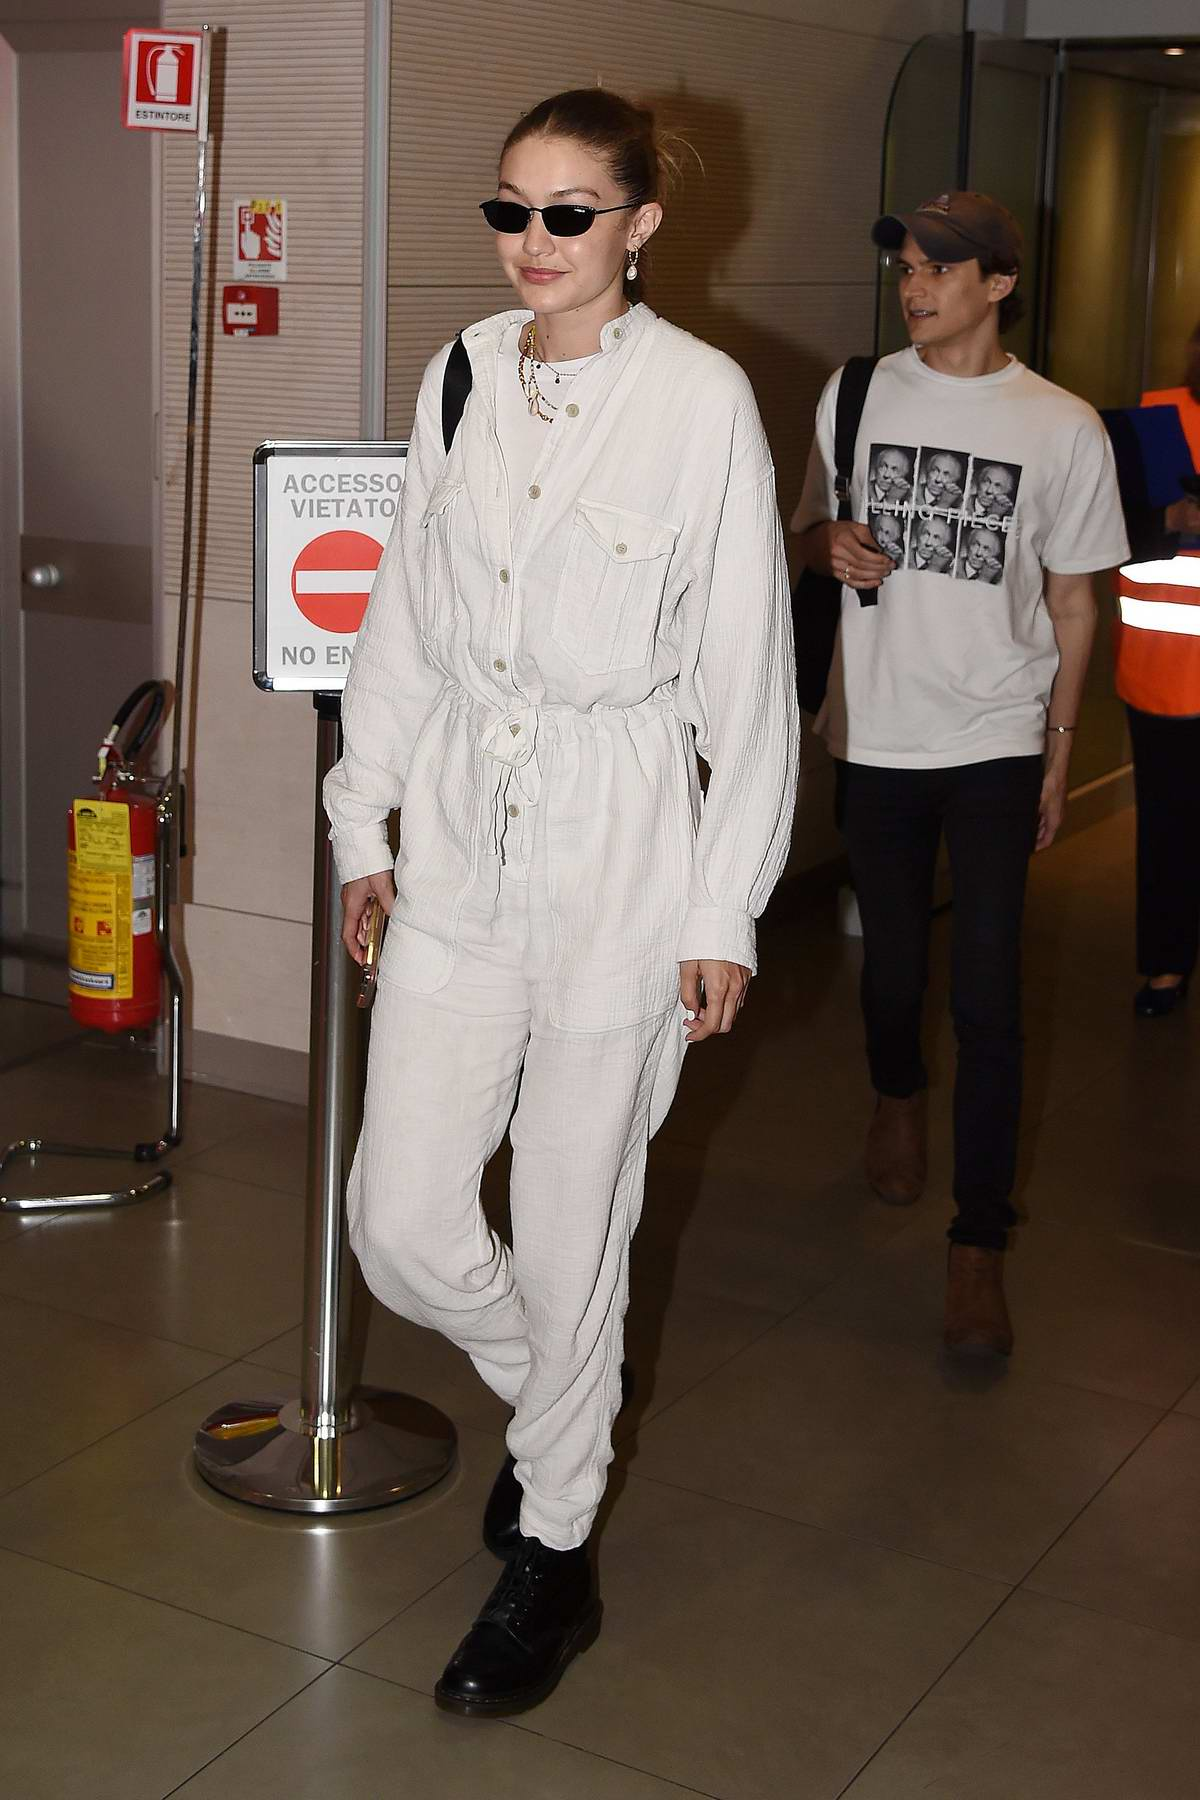 Gigi Hadid sports white jumpsuit and Prada backpack as she arrives at Florence airport, Italy